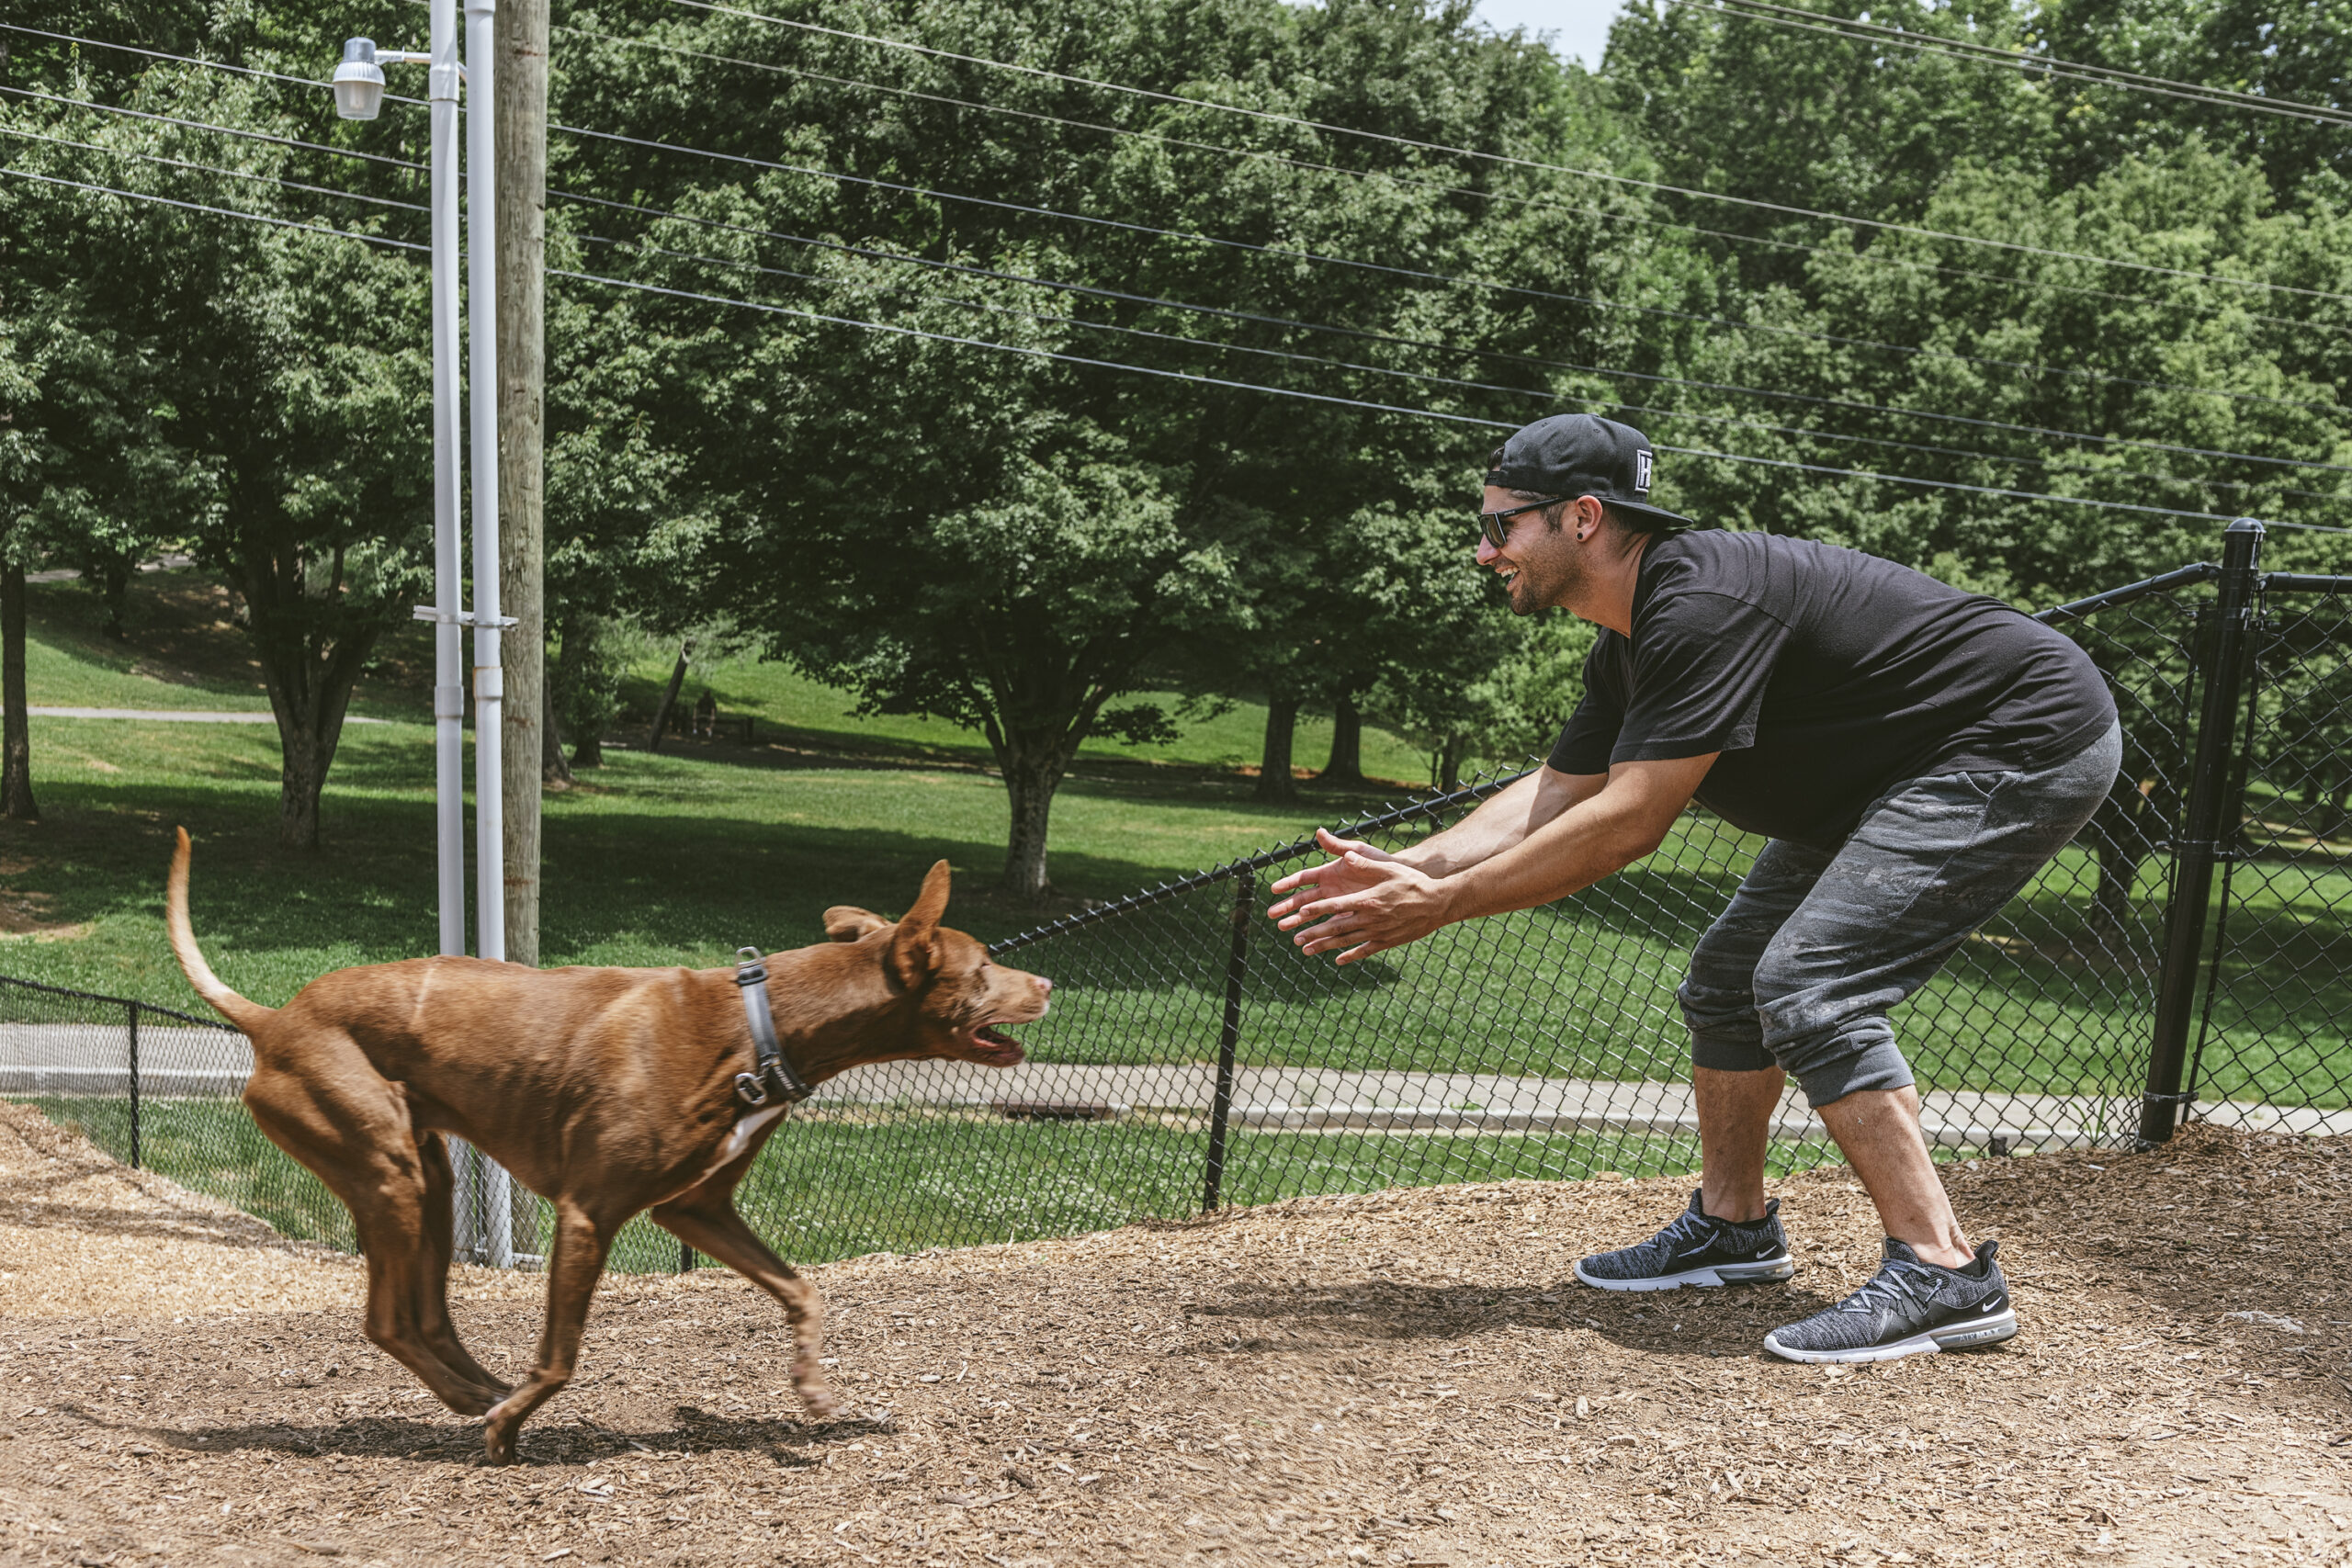 guy playing with dog outdoors dog park evolve